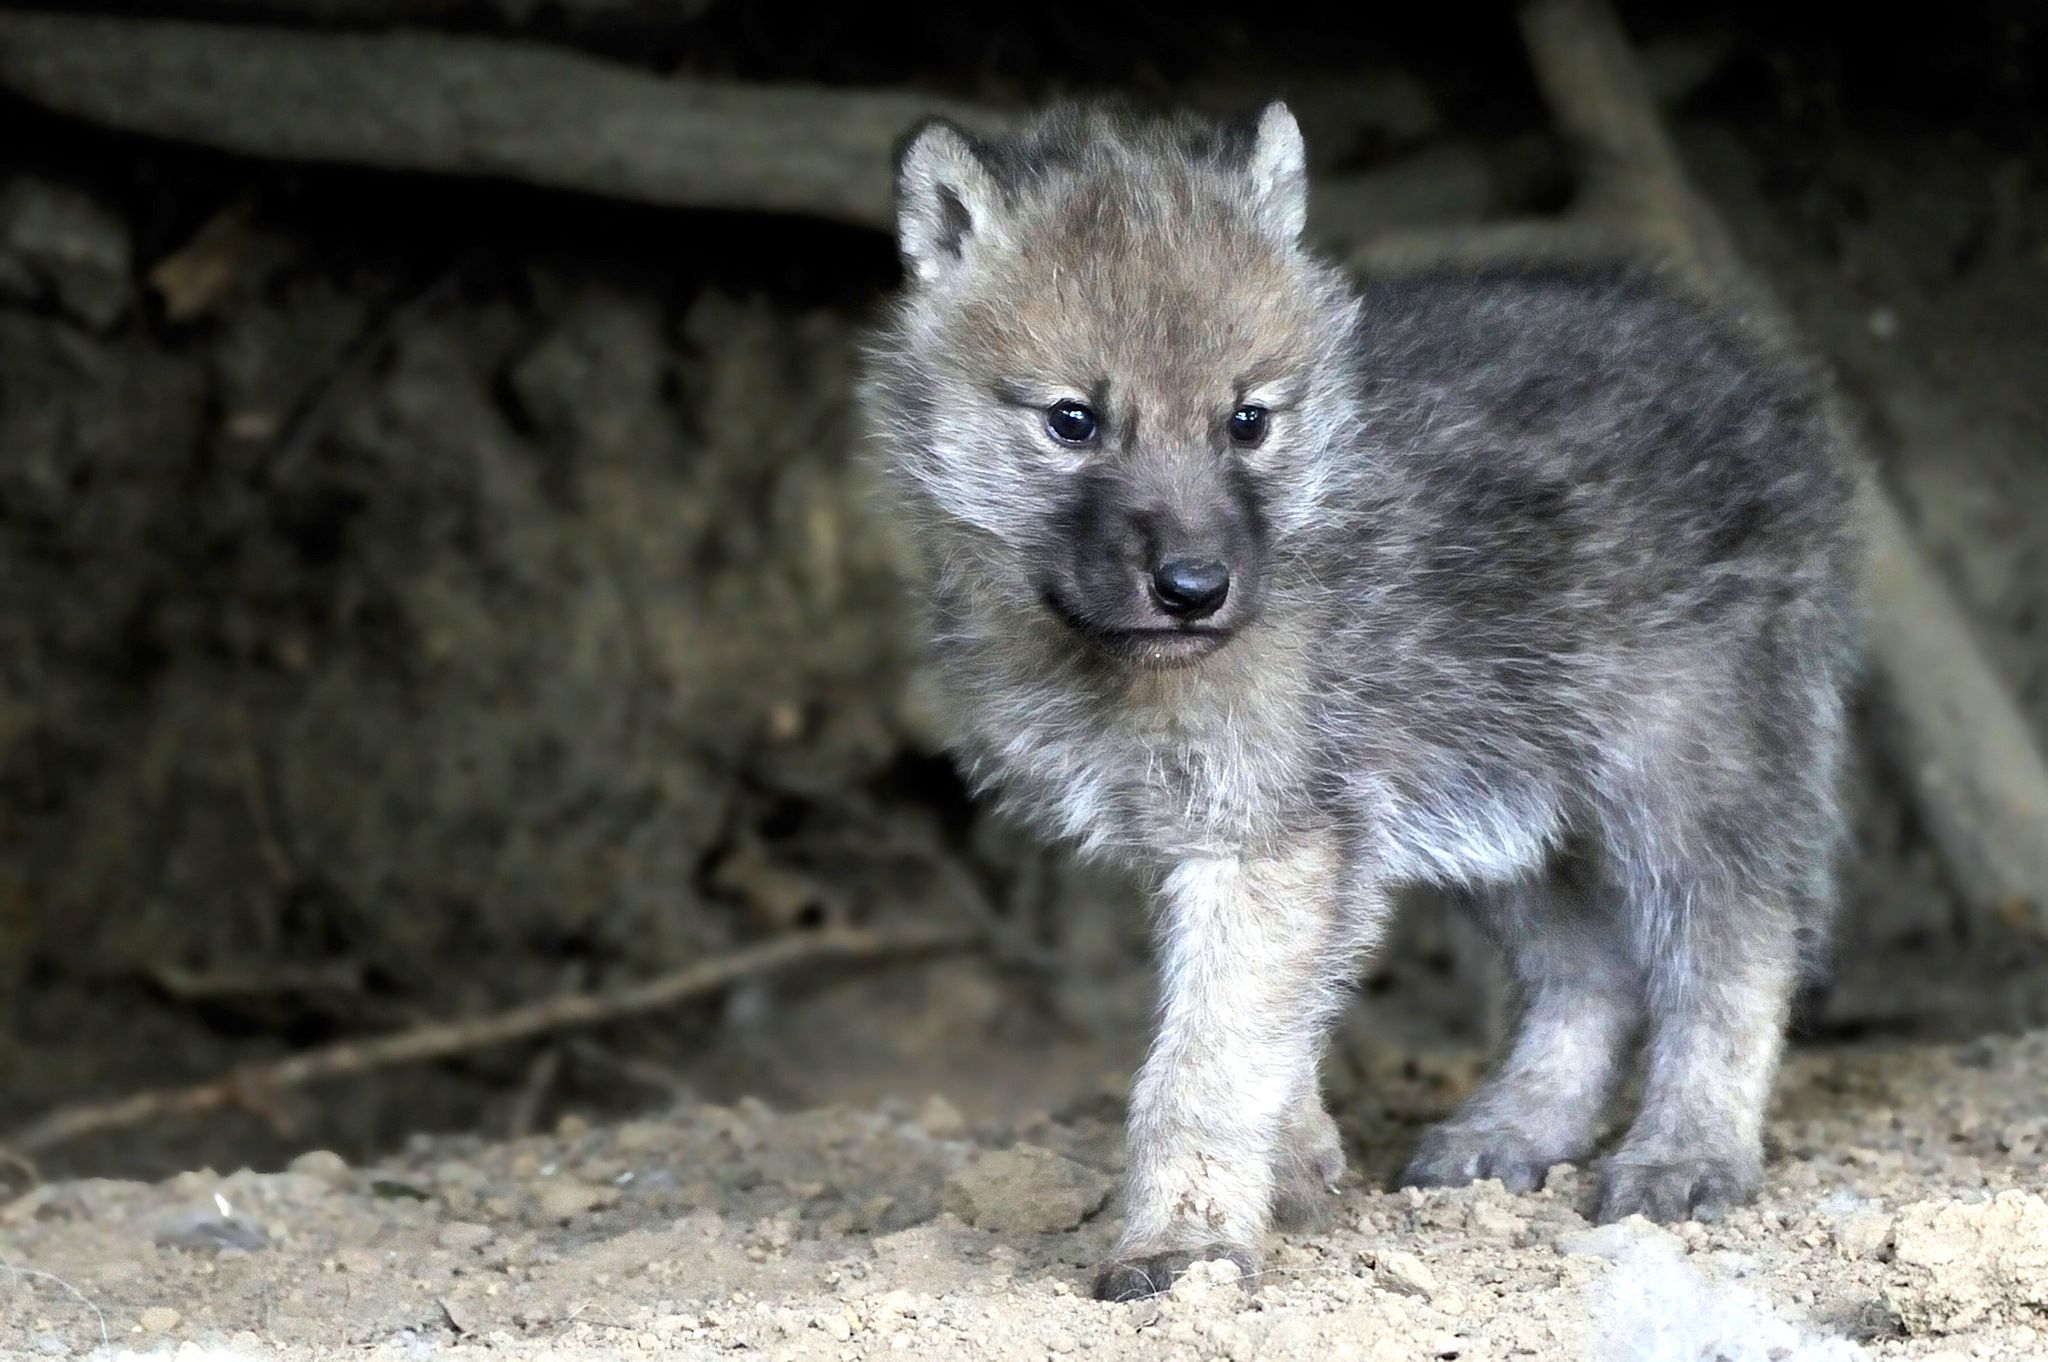 Must see Gray Wolf Wallpaper Baby - 33b23af1ea568556c64ba9aa3b5c4341  You Should Have_20169.jpg